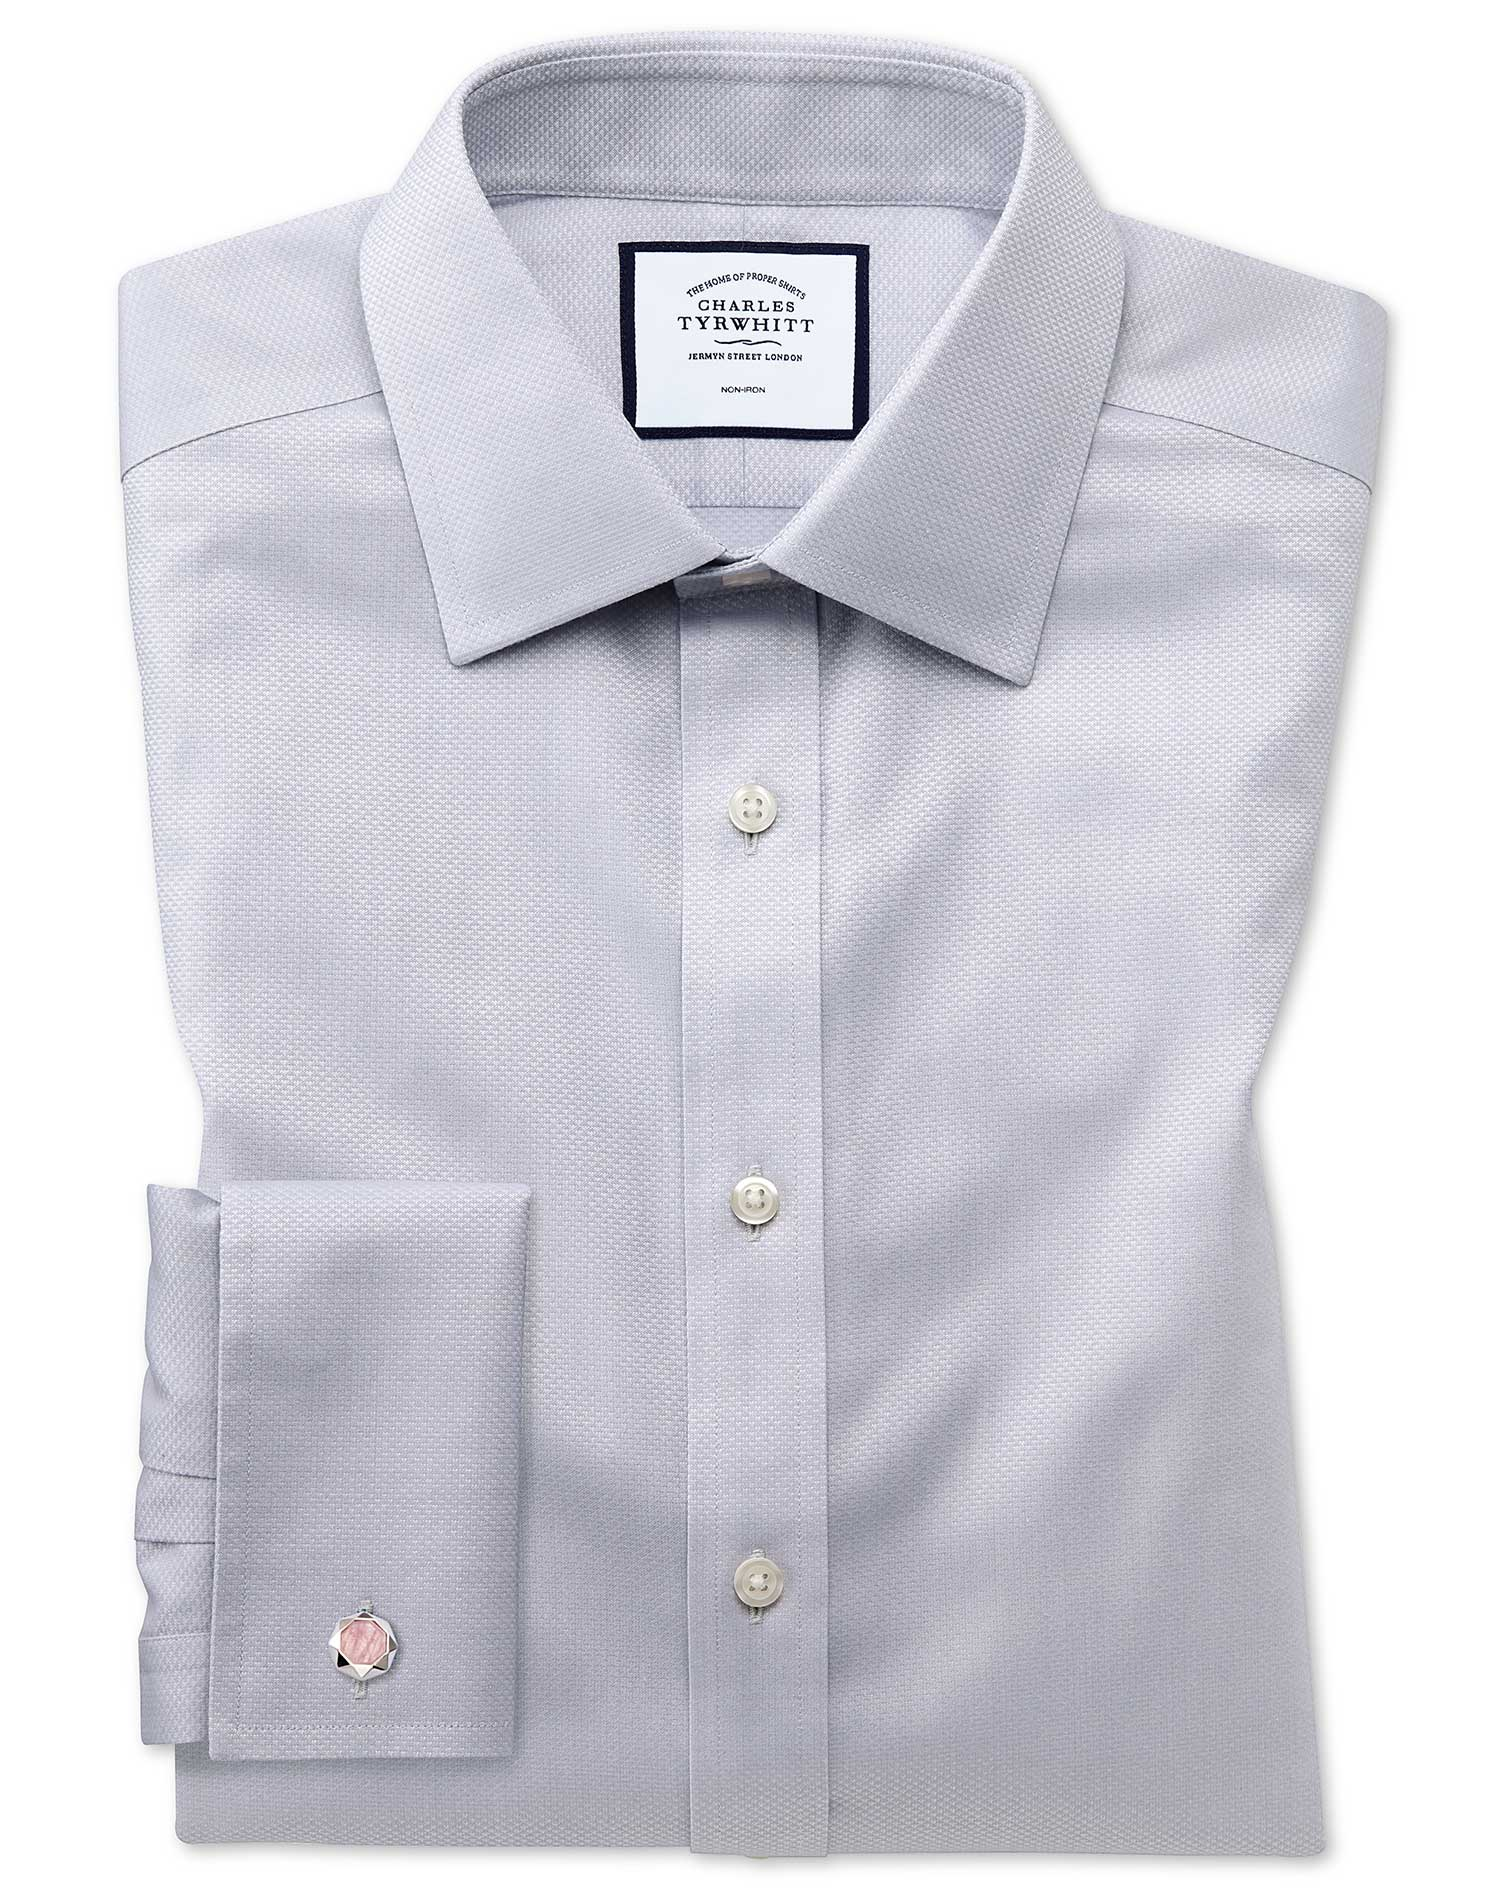 Slim Fit Non-Iron Grey Triangle Weave Cotton Formal Shirt Single Cuff Size 16.5/33 by Charles Tyrwhi